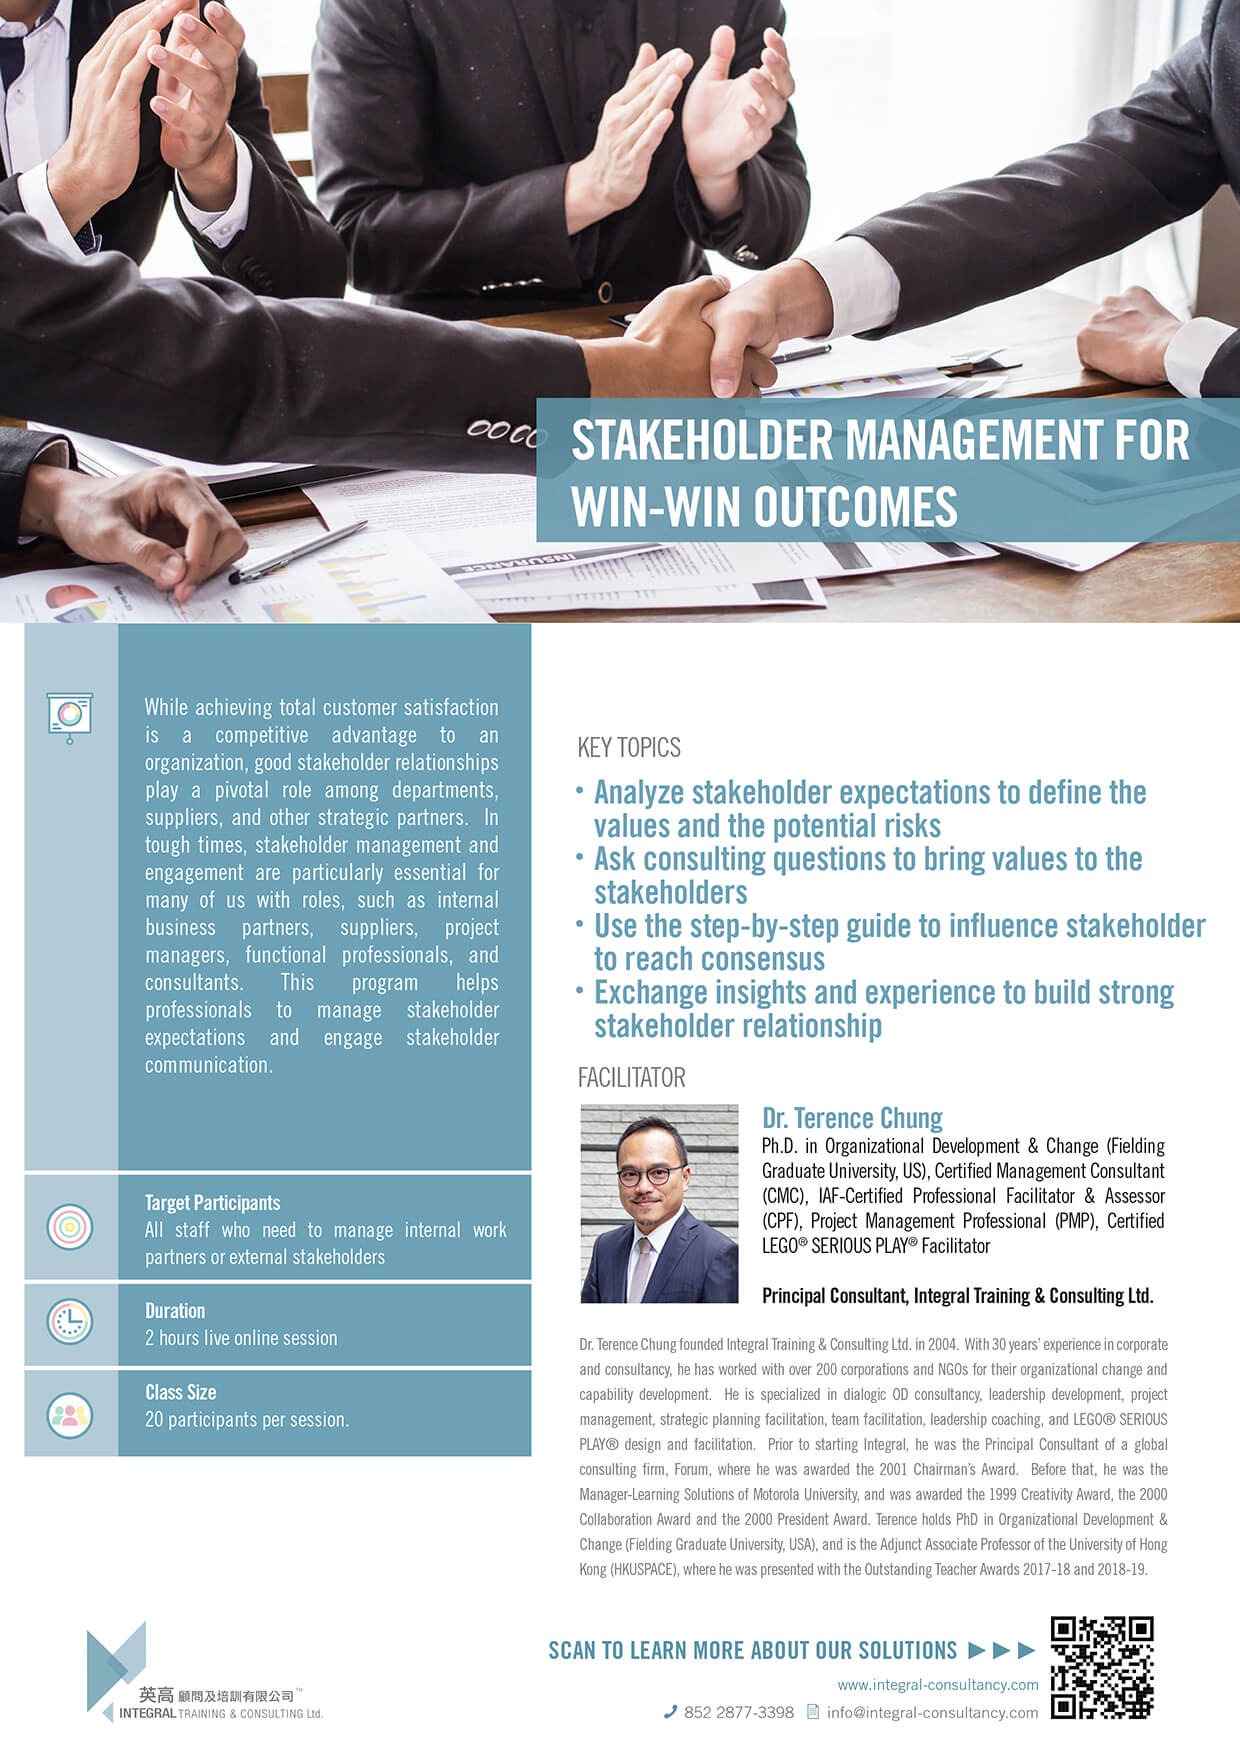 Stakeholder Management for Win-win Outcomes